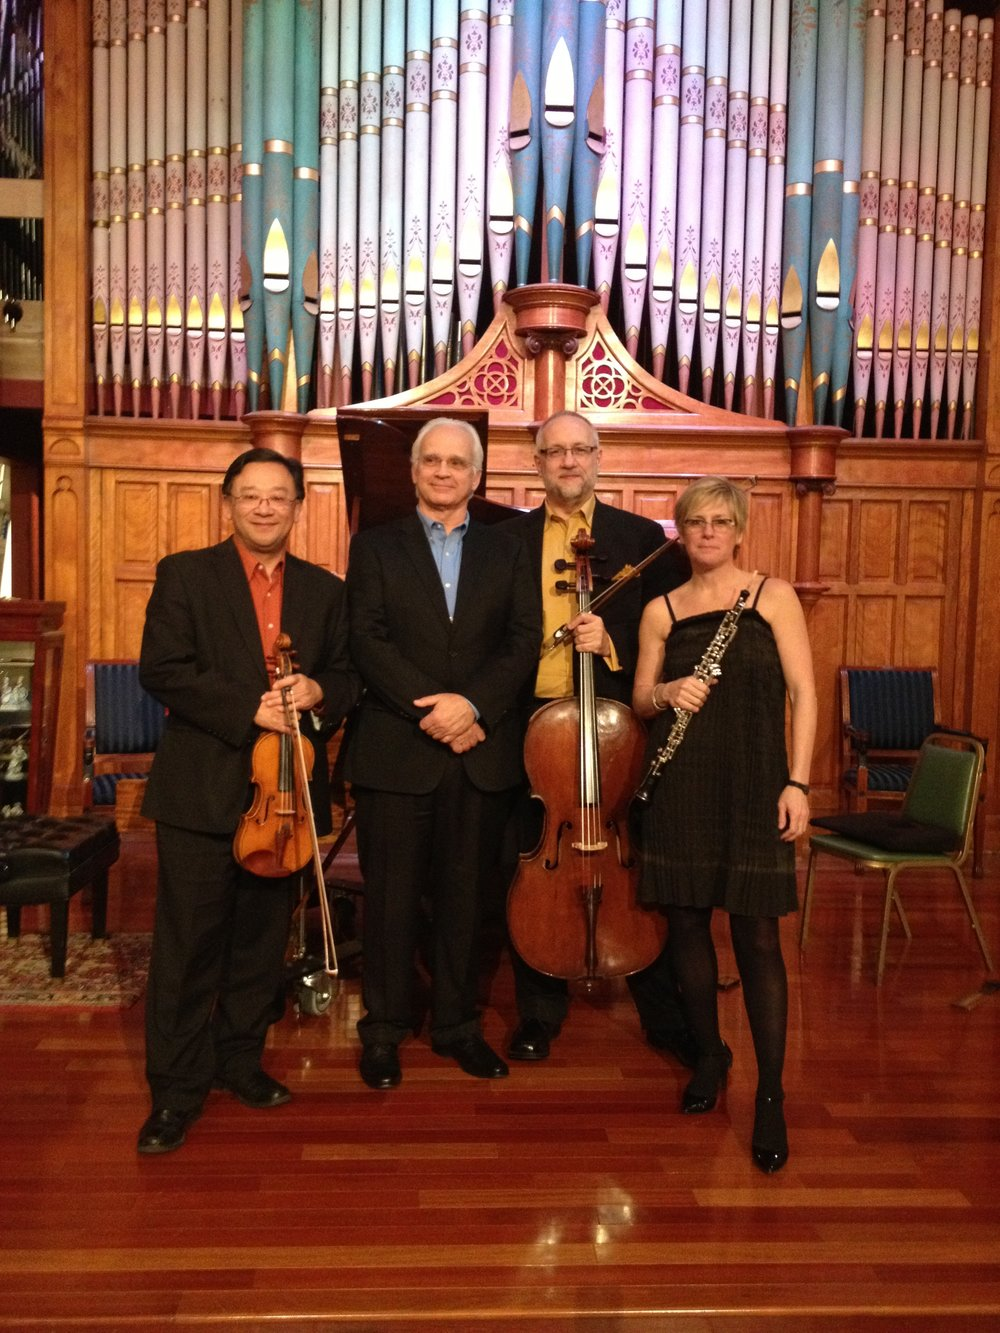 Deb Stevenson,  oboe ; Thomas Yang,  violin ;   Steven Houser,  cello ; George Radosavljevic,  piano